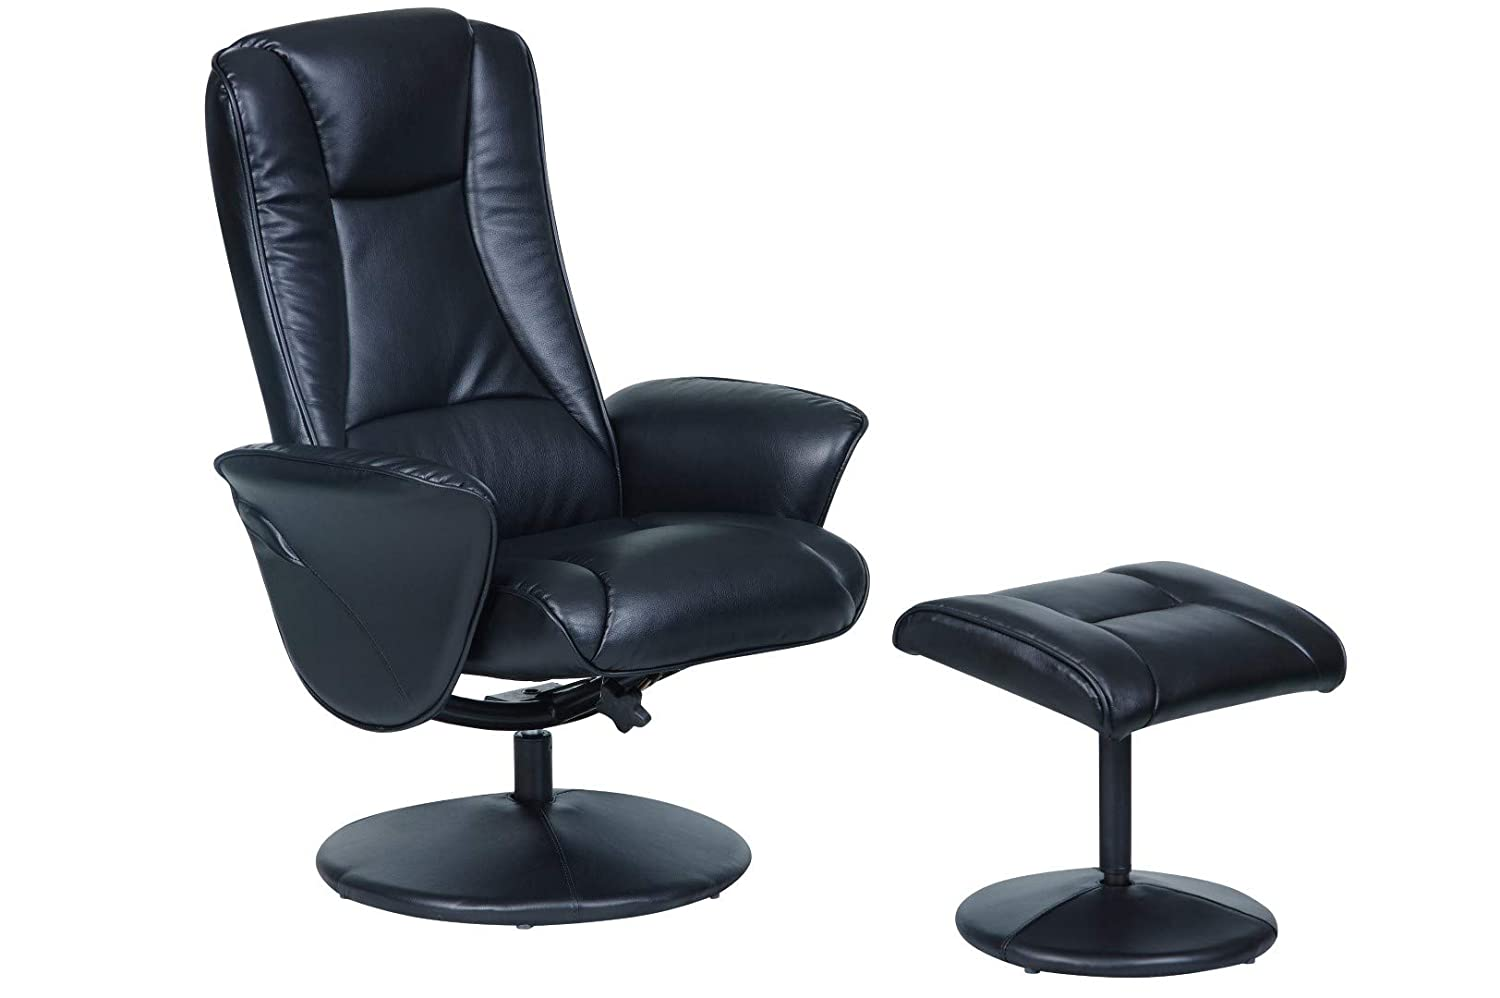 Memory Foam Swivel Recliner Chair /& Footstool in choice of 3 colours. Chocolate Morris Living The Naples